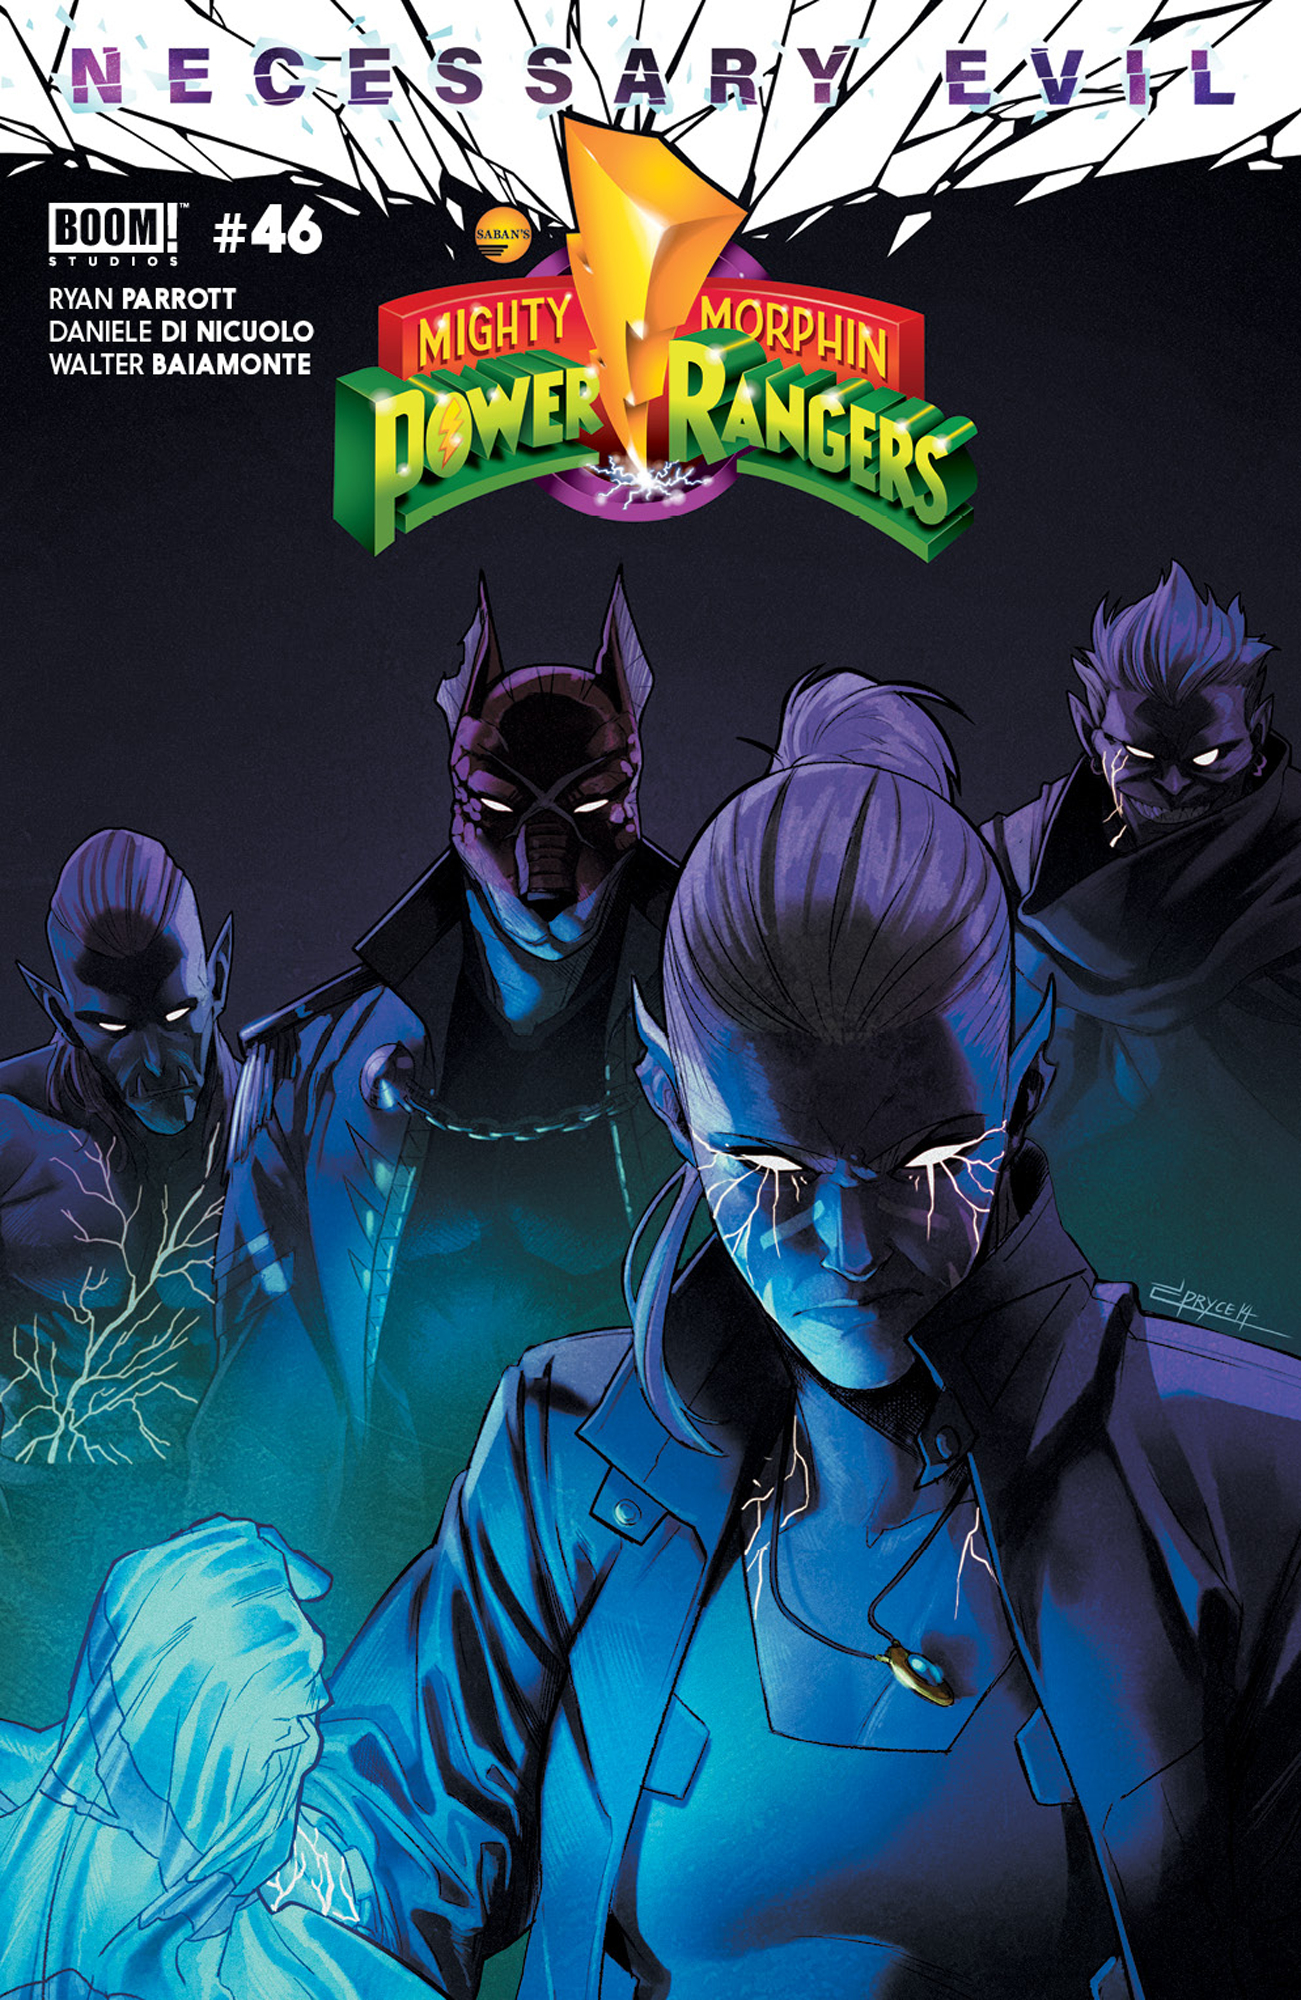 MIGHTY MORPHIN POWER RANGERS #46 CVR A CAMPBELL